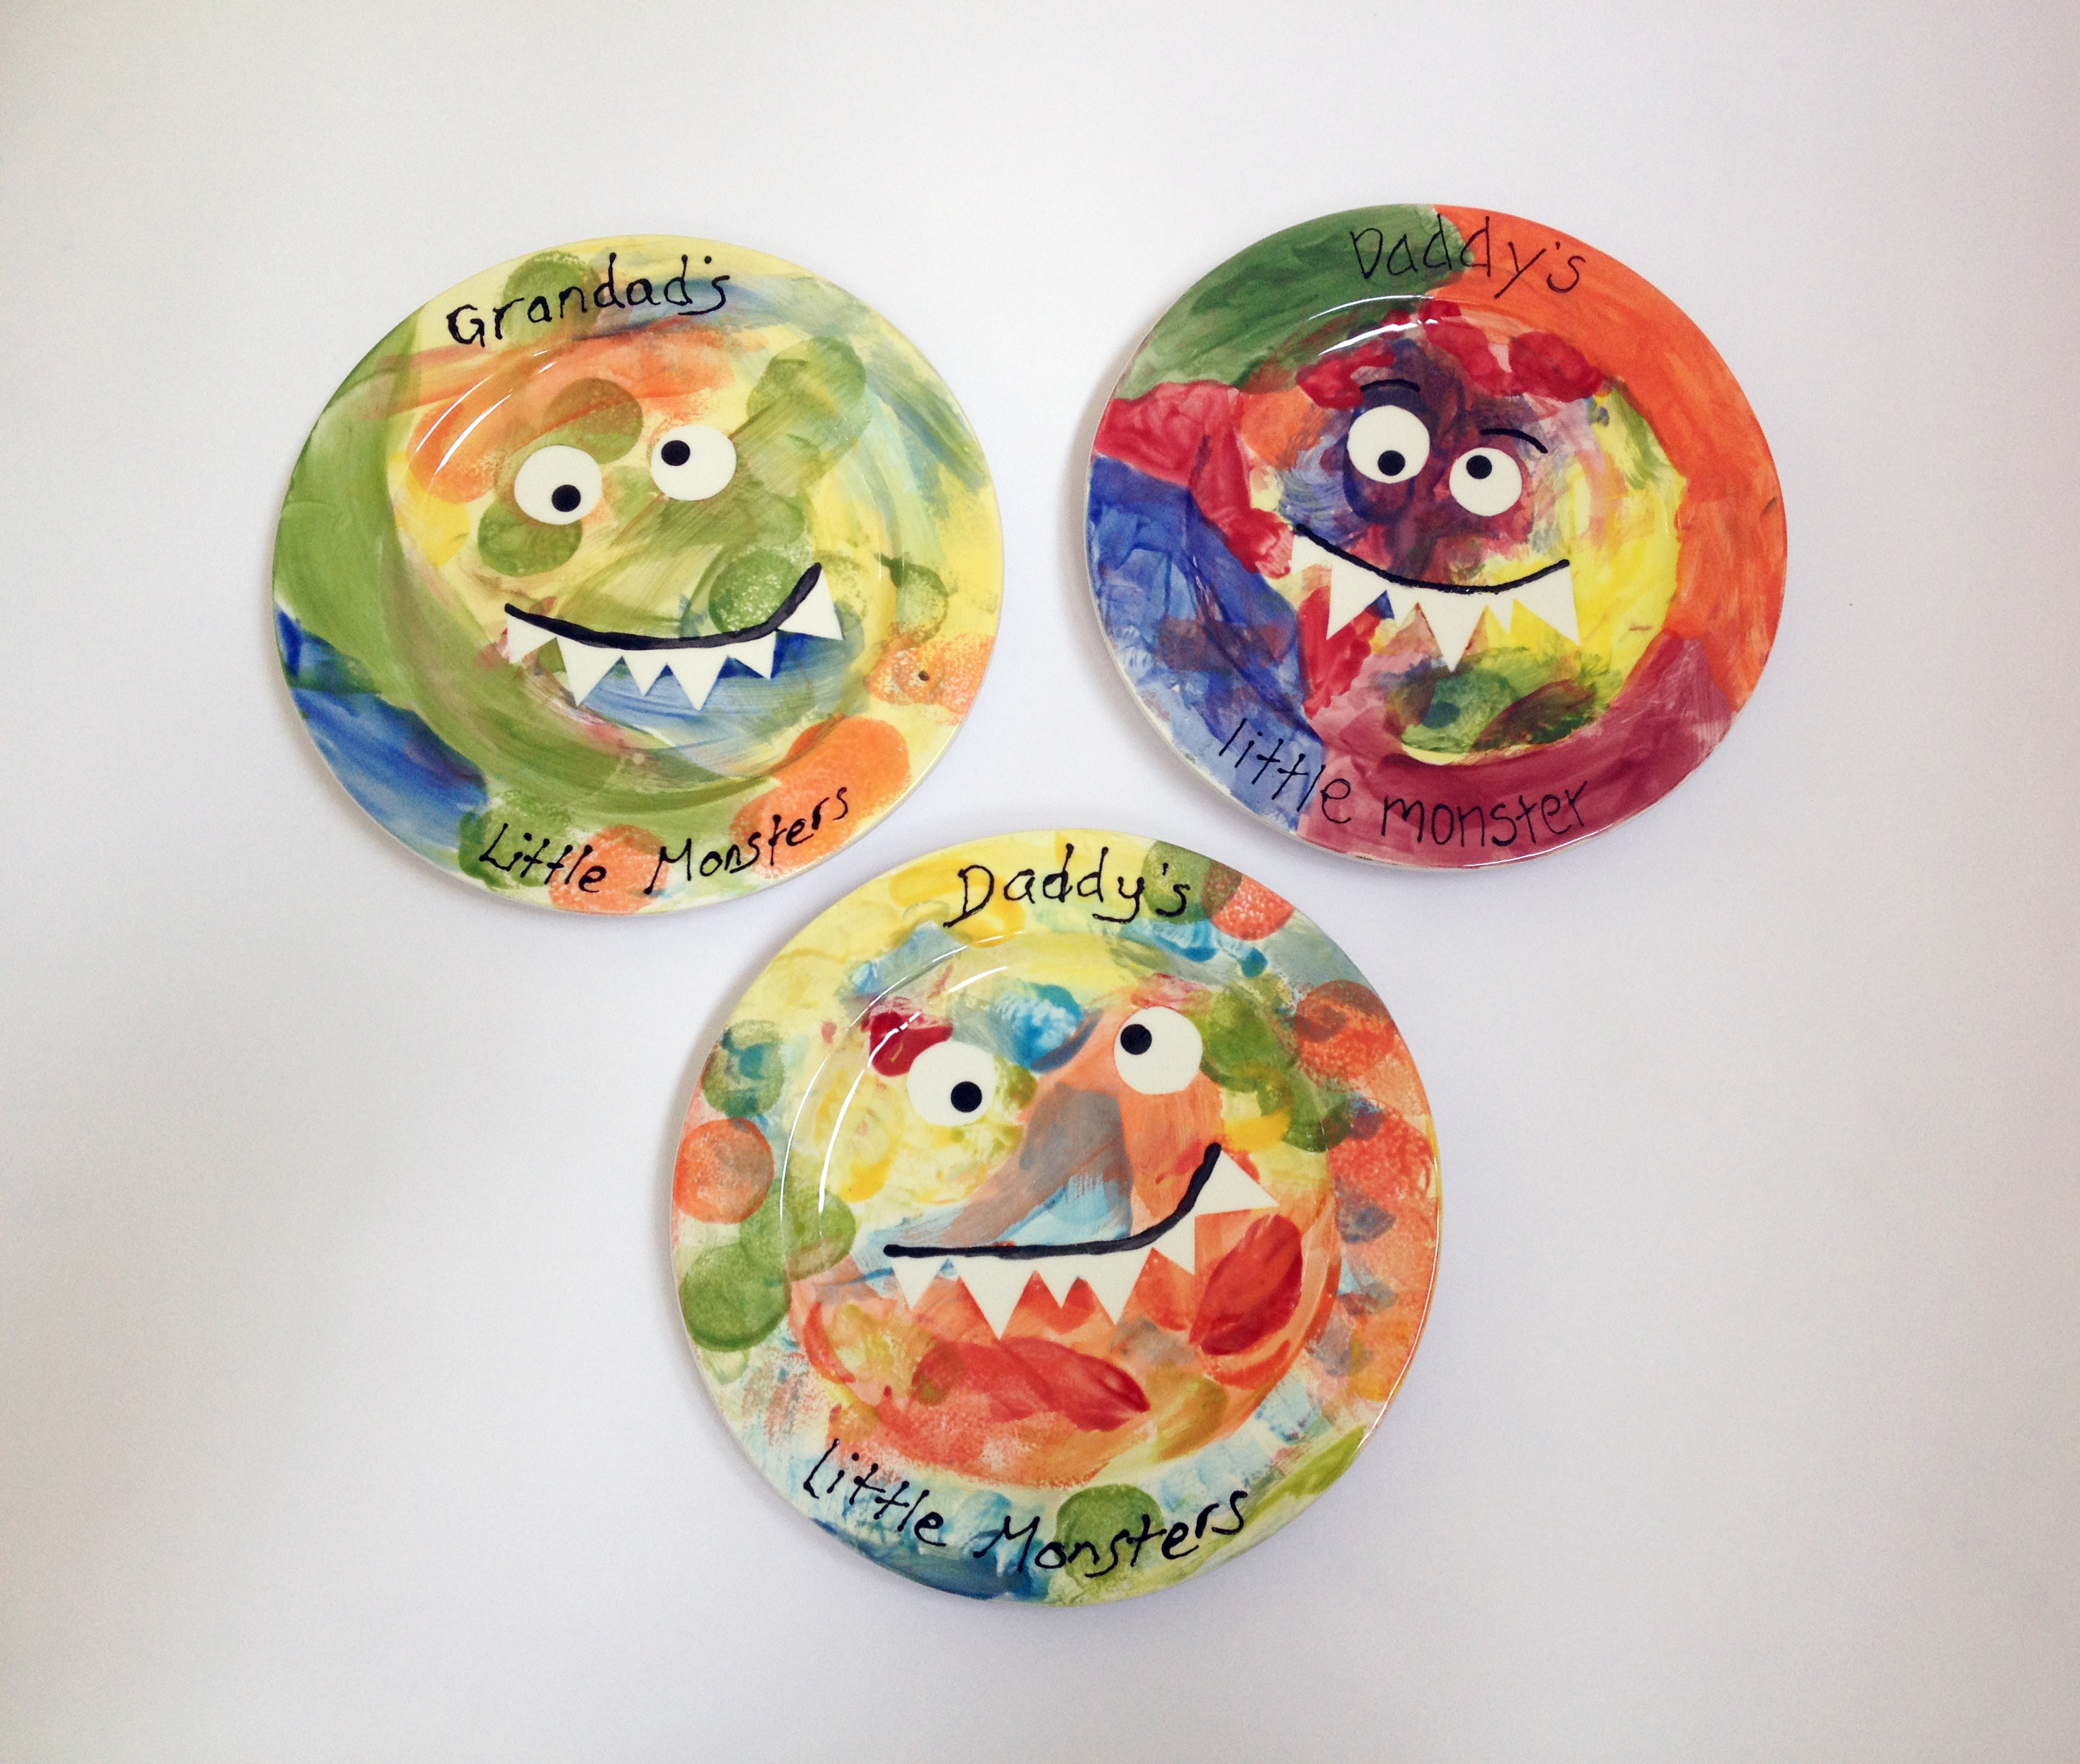 Daddy's little monster plates